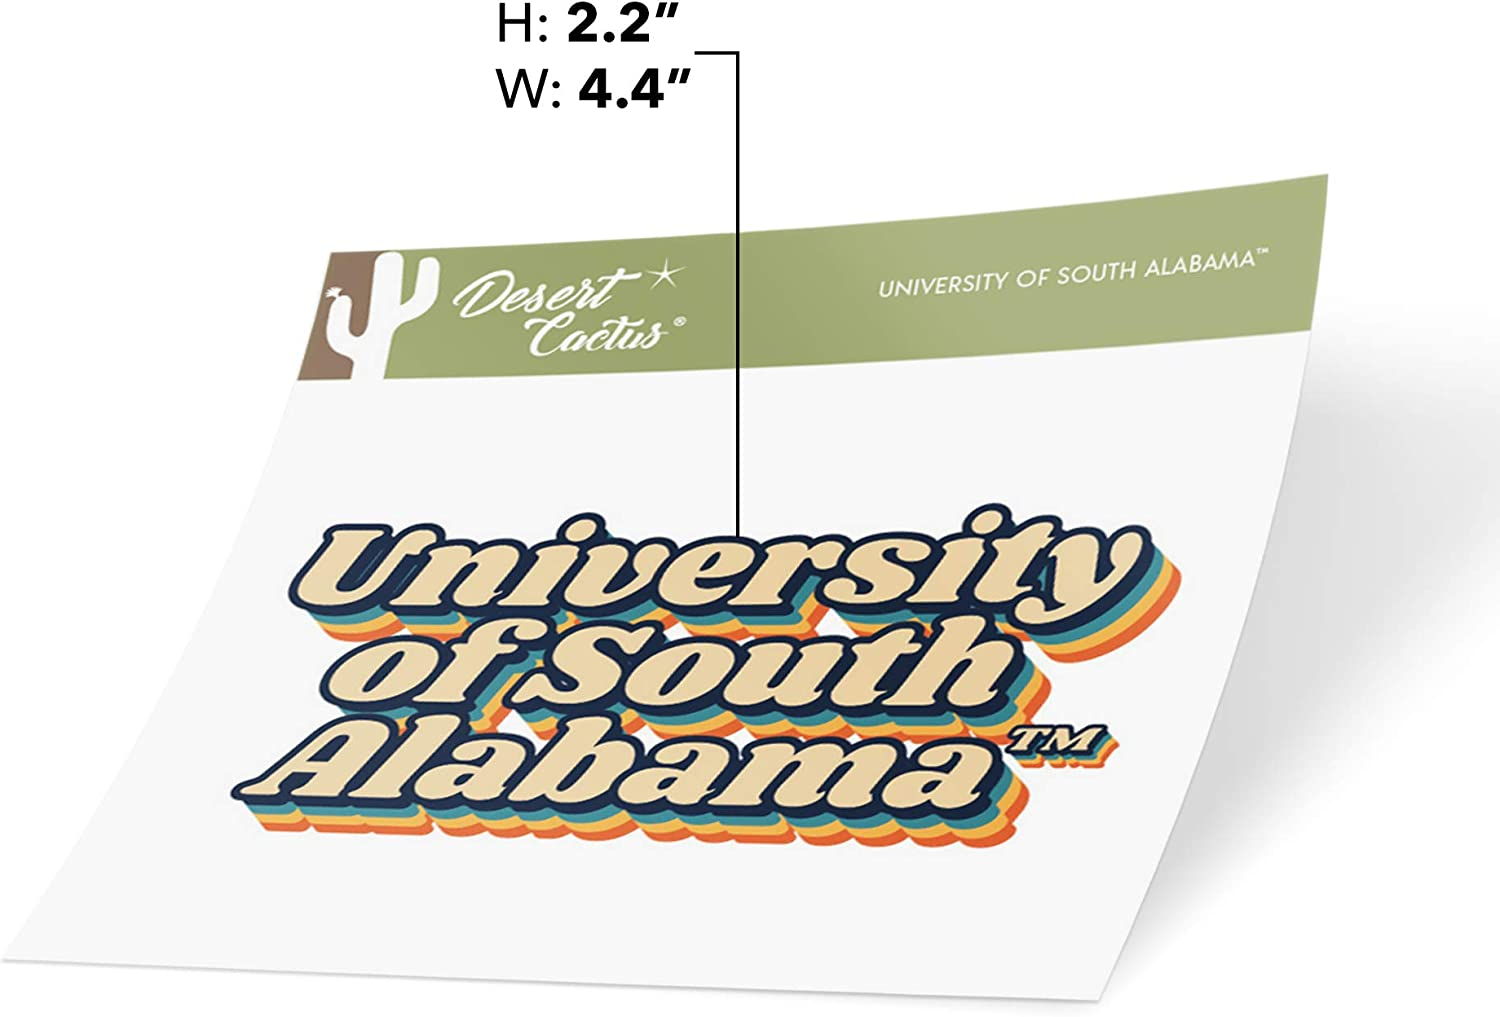 University of South Alabama USA Jaguars NCAA Vinyl Decal Laptop Water Bottle Car Scrapbook 70s Name Sticker